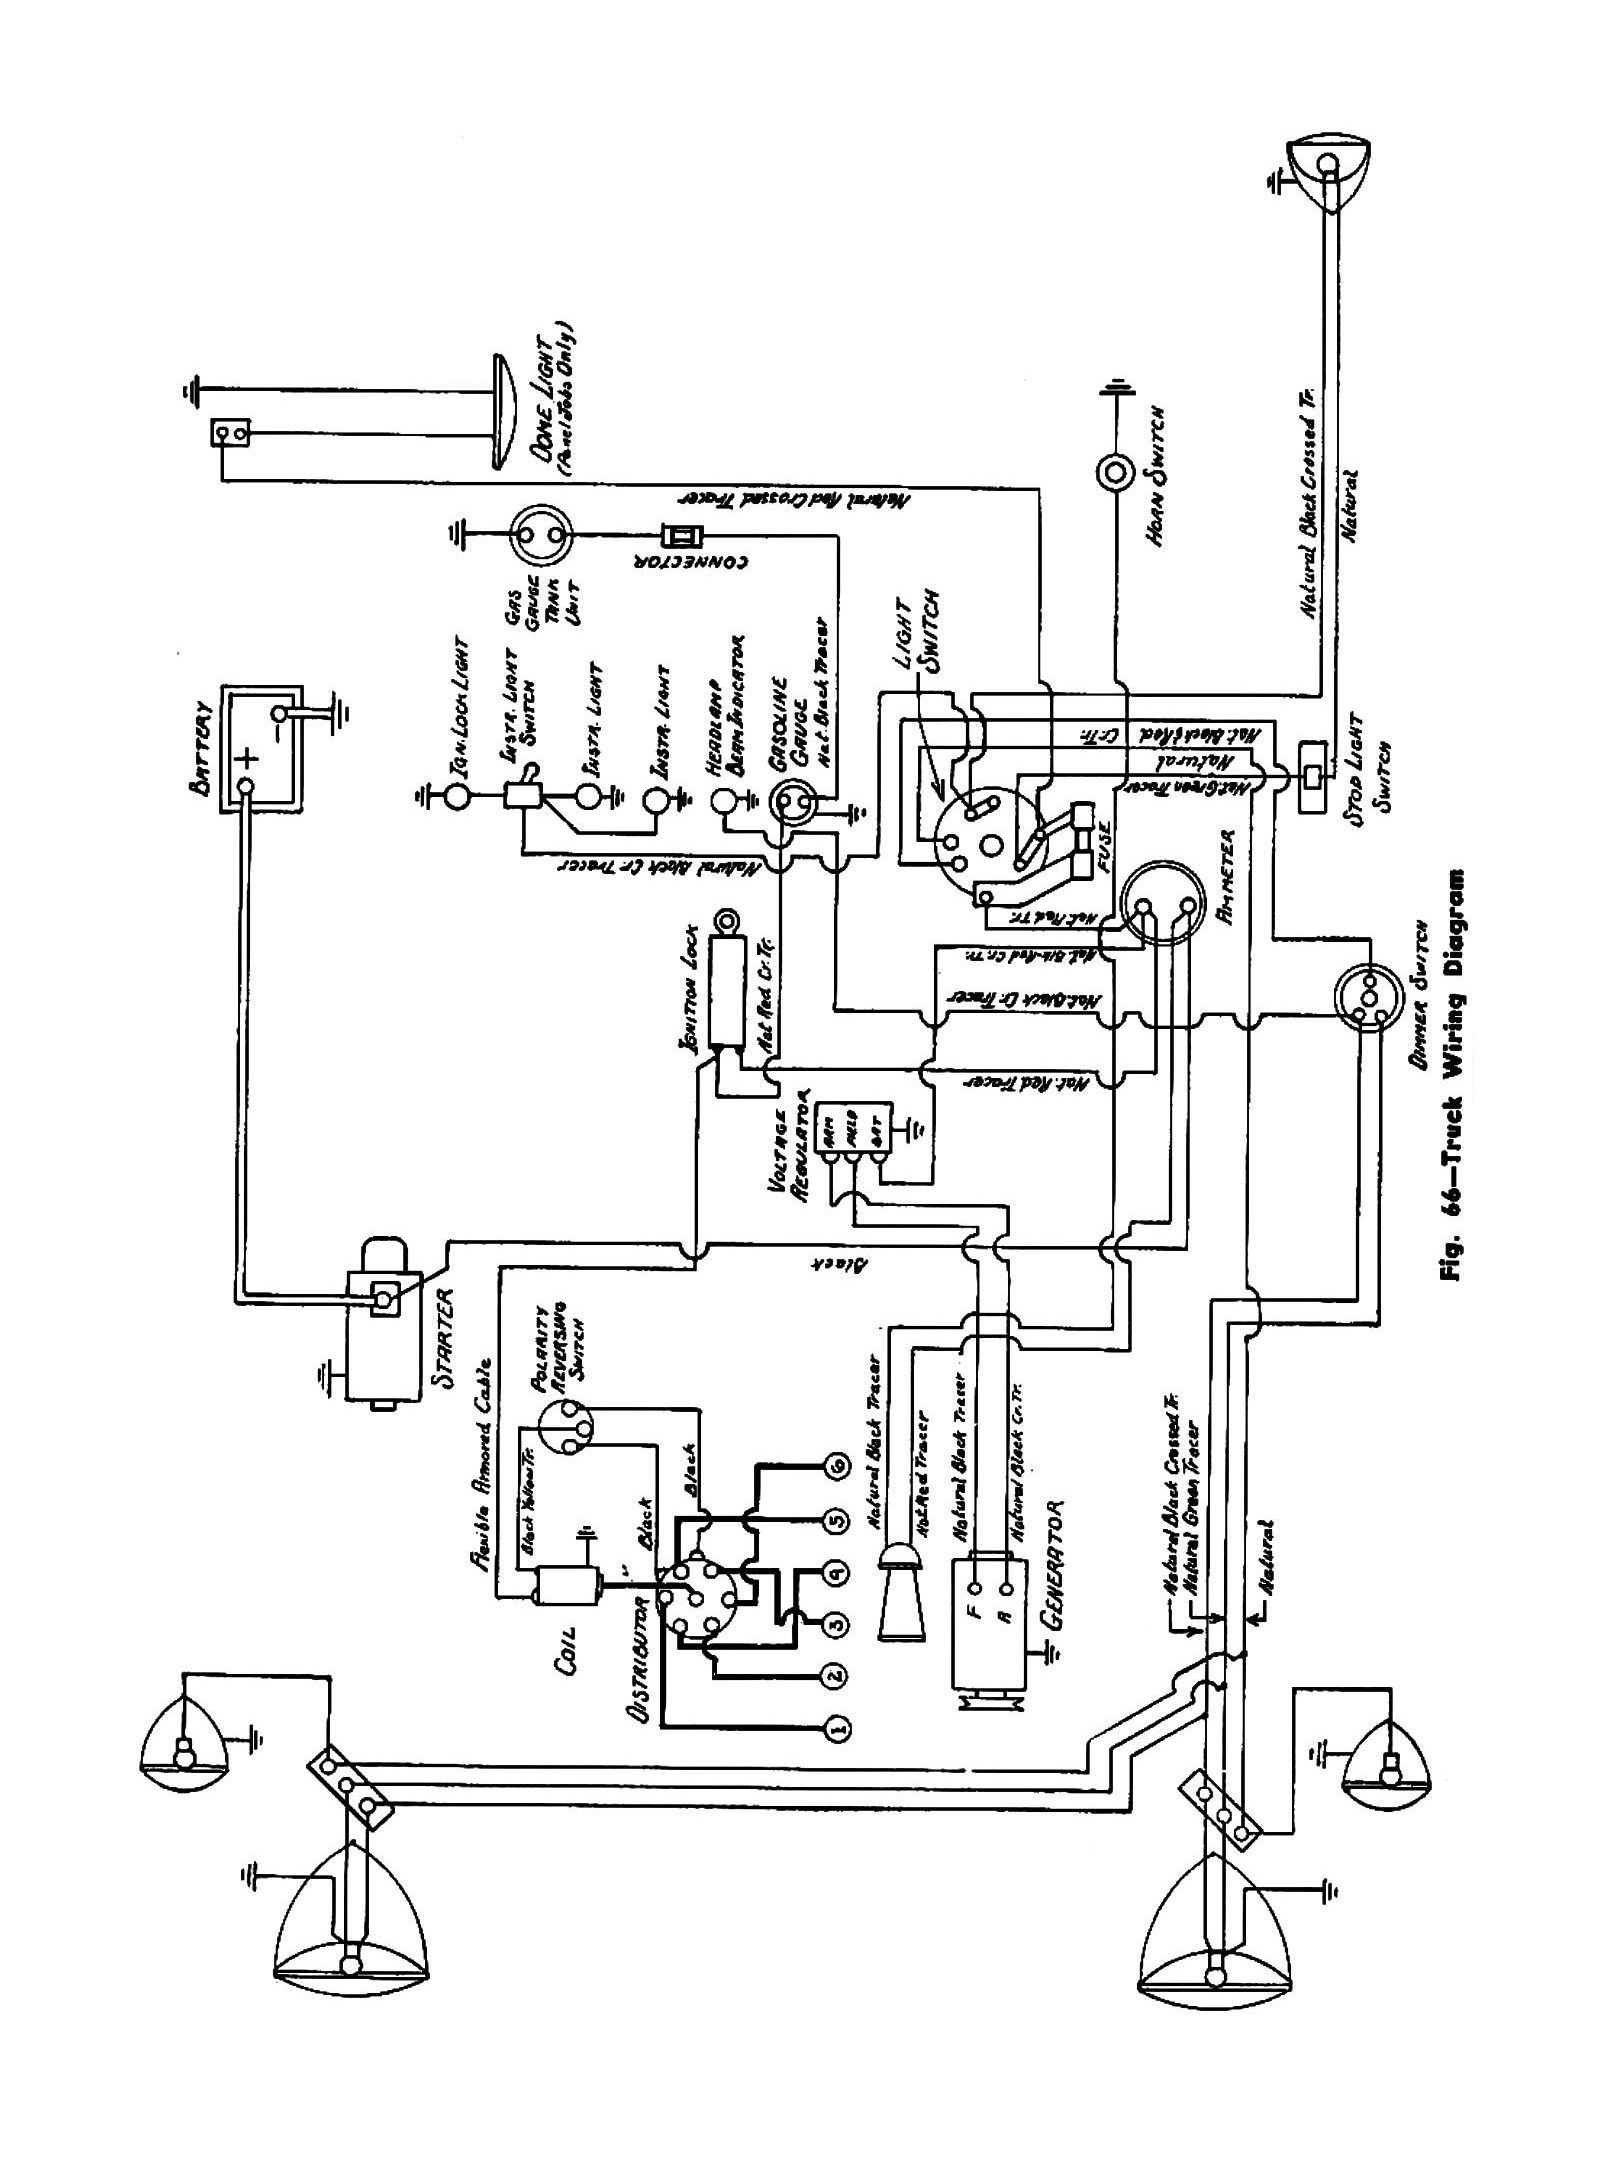 hight resolution of 1951 chevrolet wiring diagram simple wiring diagrams mercedes benz wiring harness chevy truck wiring diagram chevy